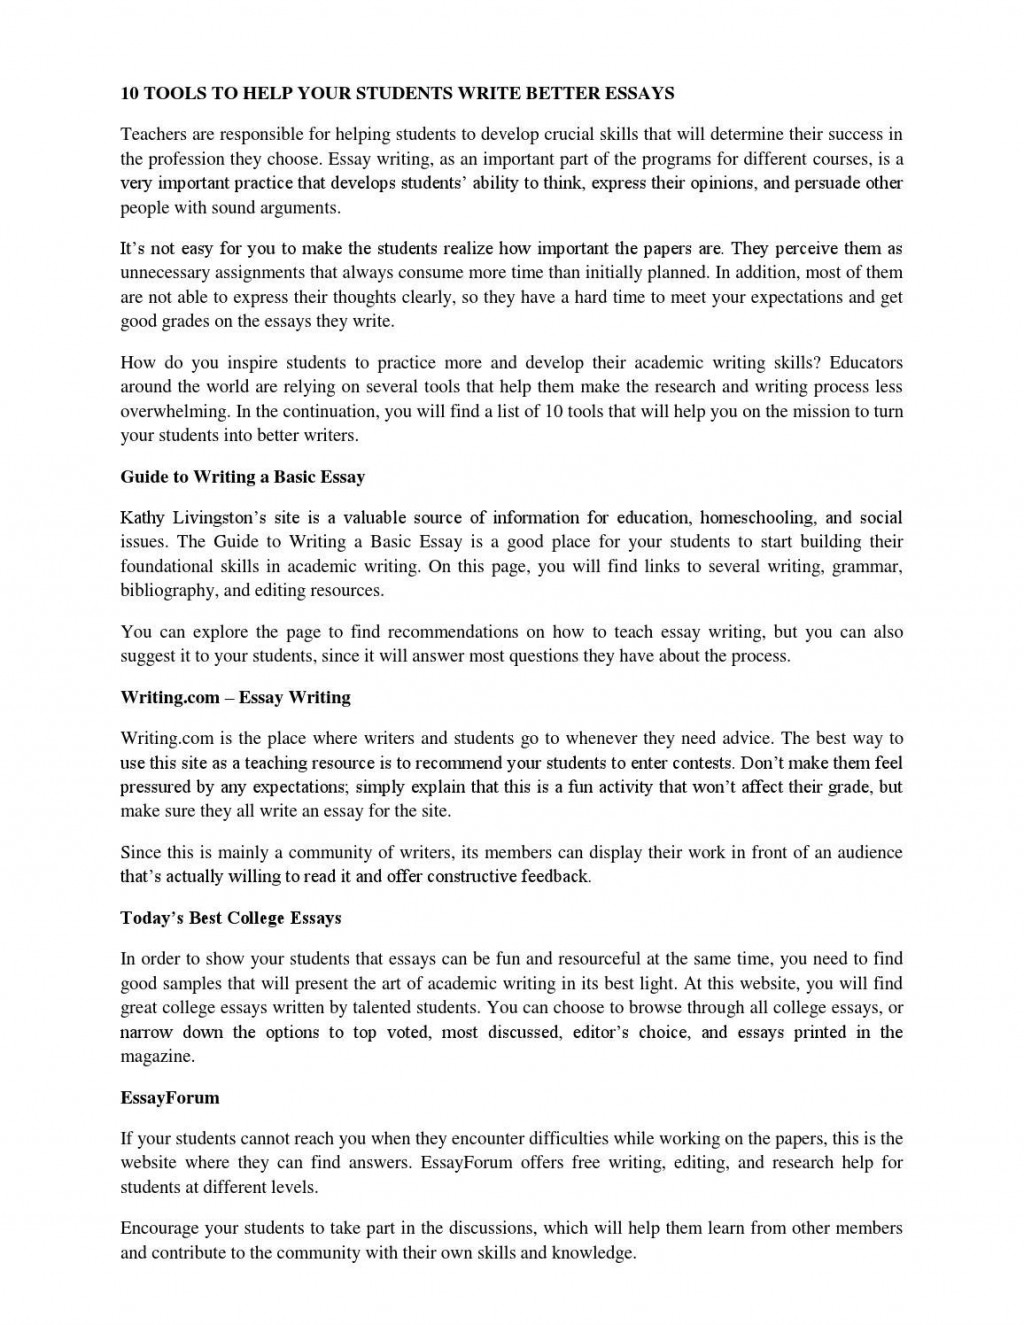 008 Free Online Research Paper Publication Essay Writing Websites Reviews For Students Editing Page Example Astounding Large